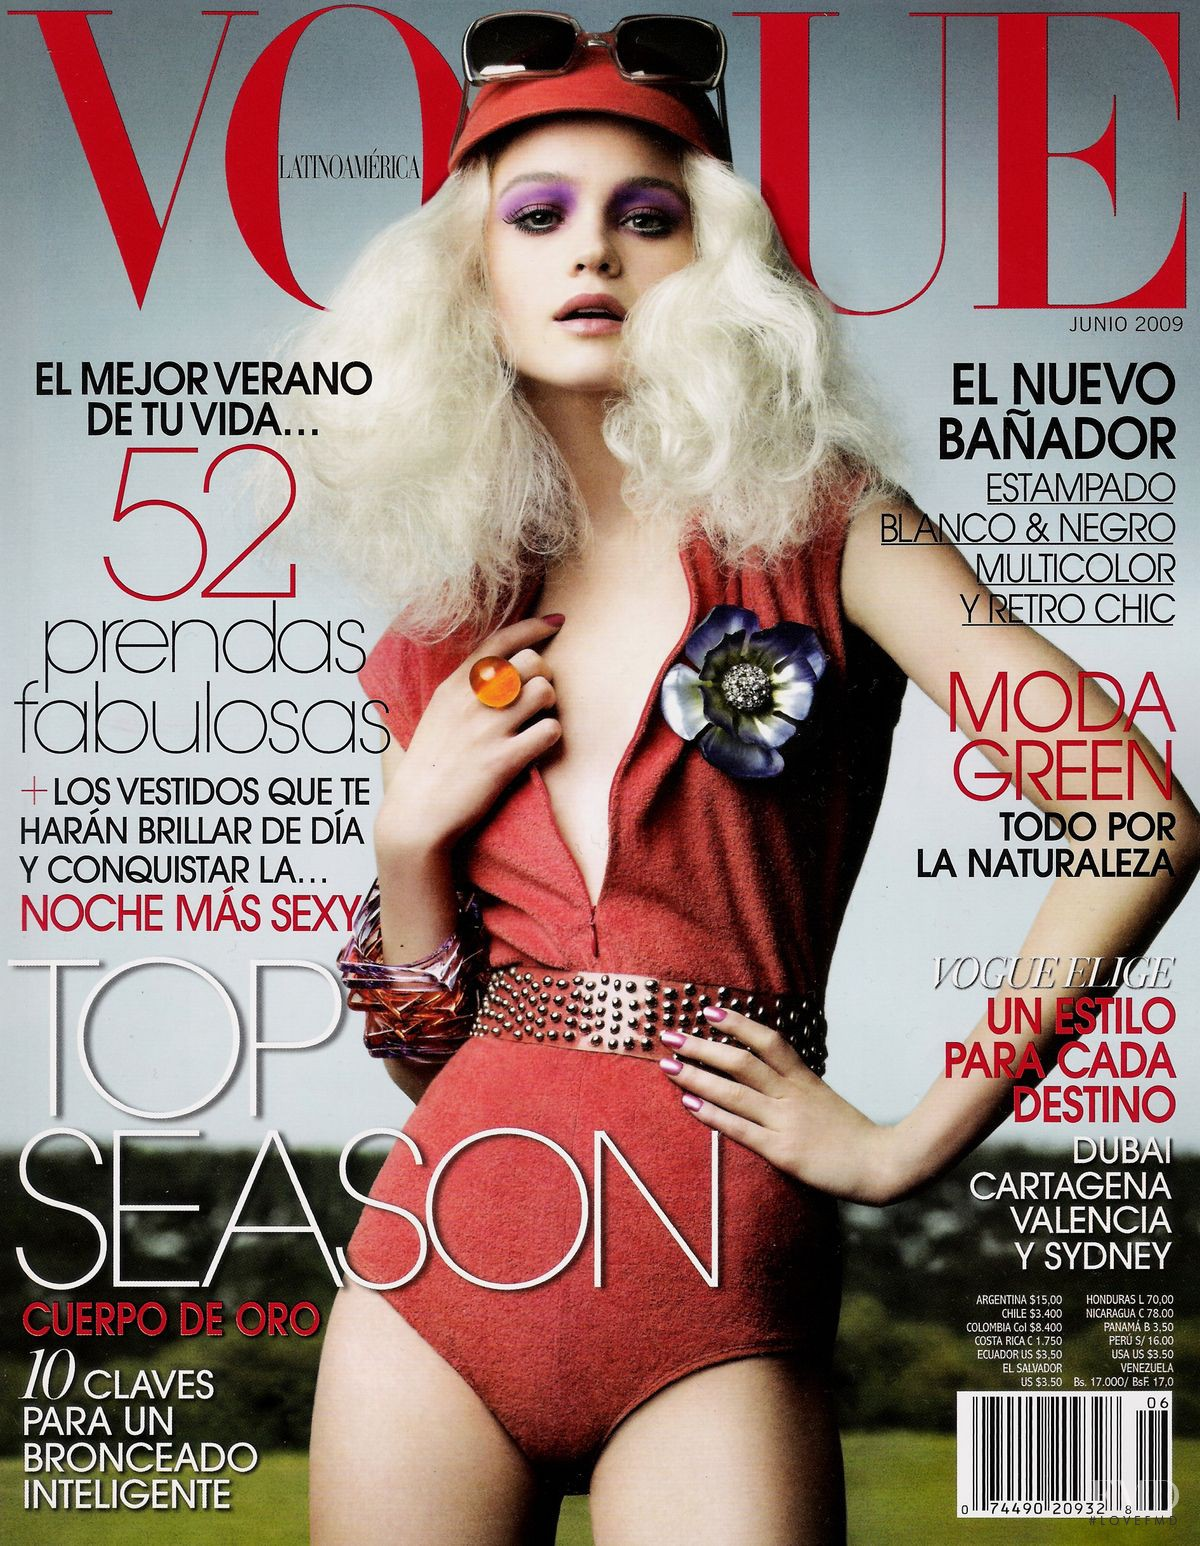 Cover Of Vogue Latin America With Rosie Tupper, June 2009